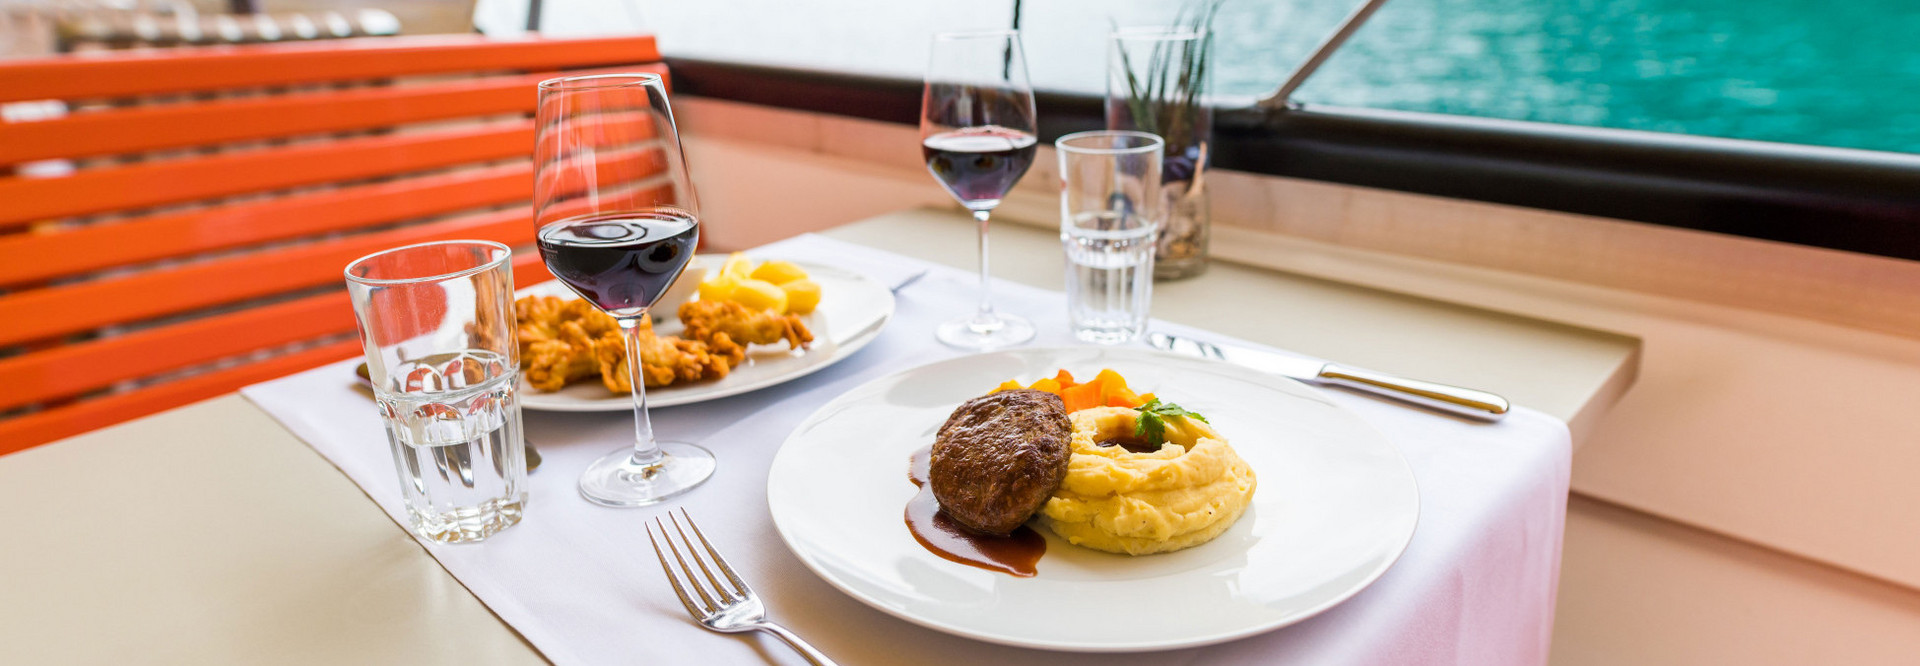 A table on a steamer is set for two people. The food is already on the table and the wine glasses are filled with red wine.